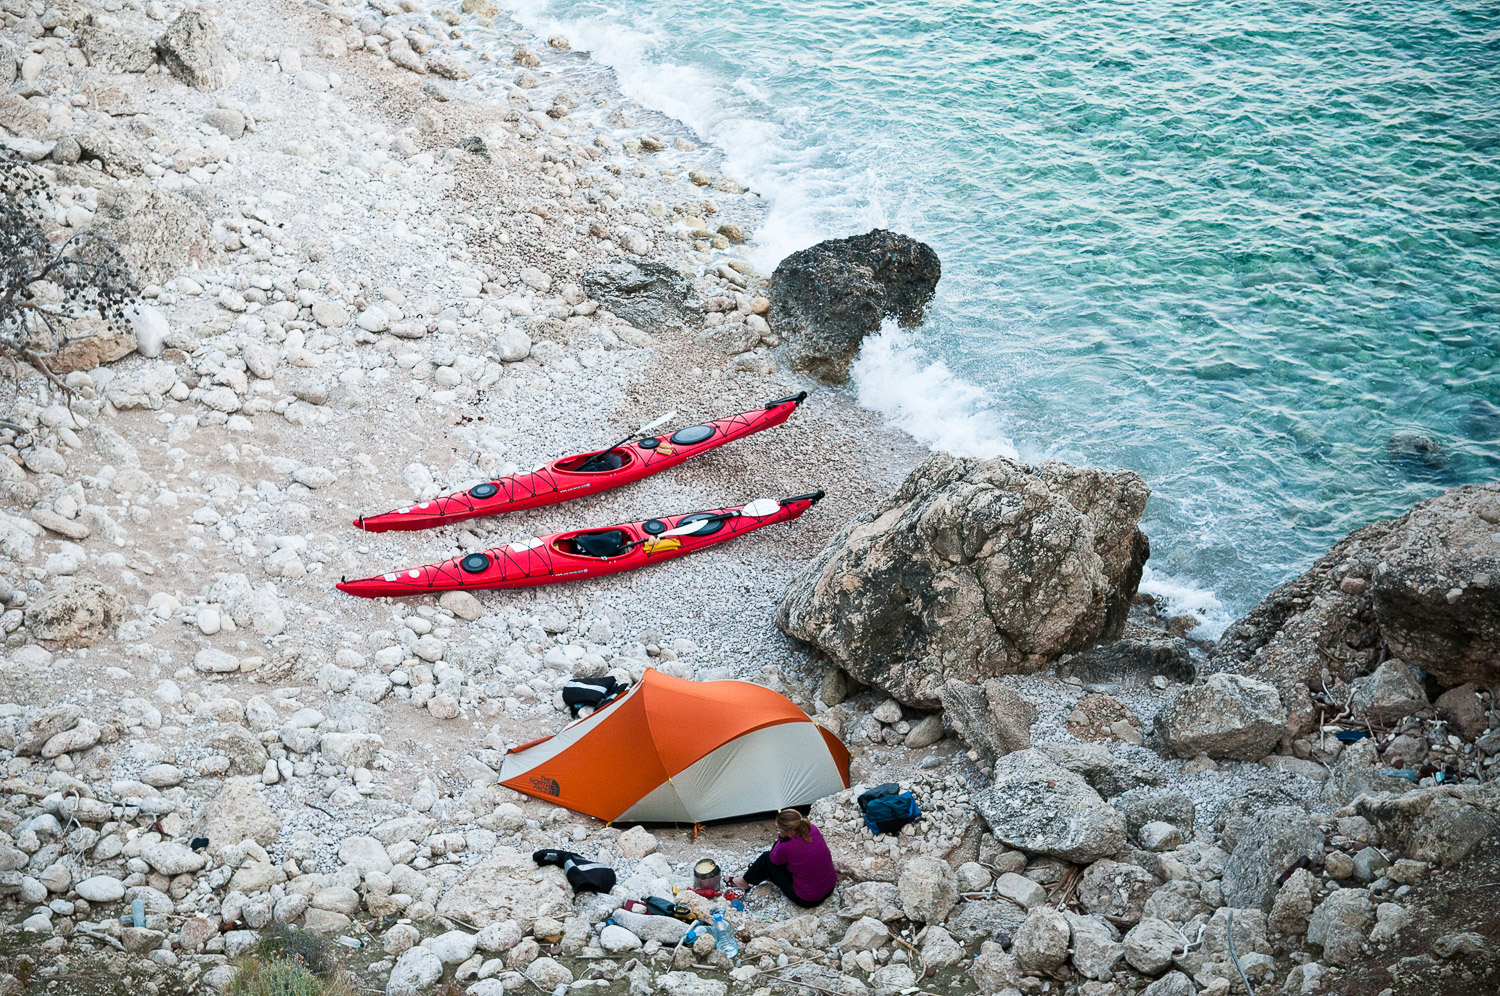 Woman sea kayaker camping, while paddling the Turquoise Coast, Turkey.